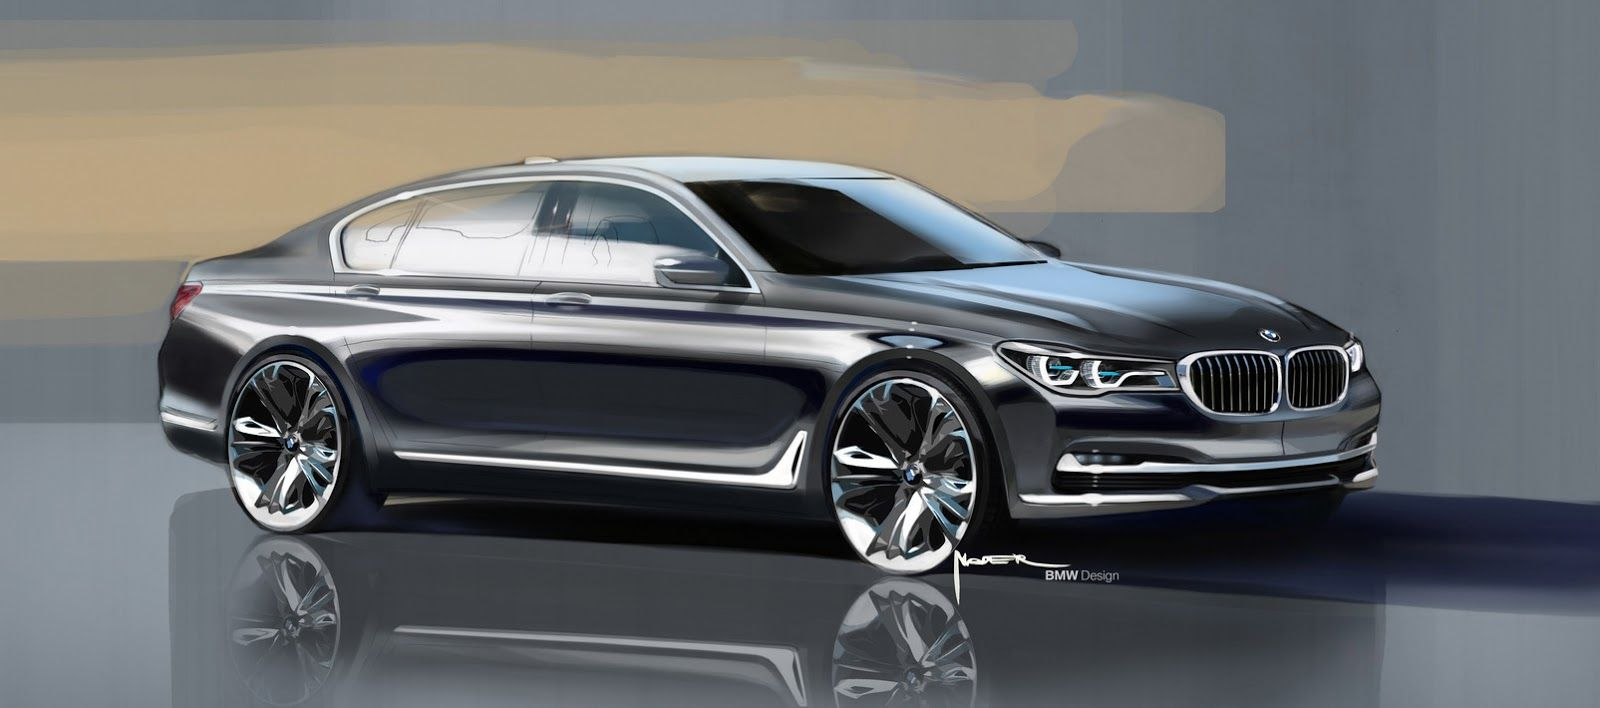 The All New 2016 Bmw 7 Series In 169 Photos And Full Details Bmw